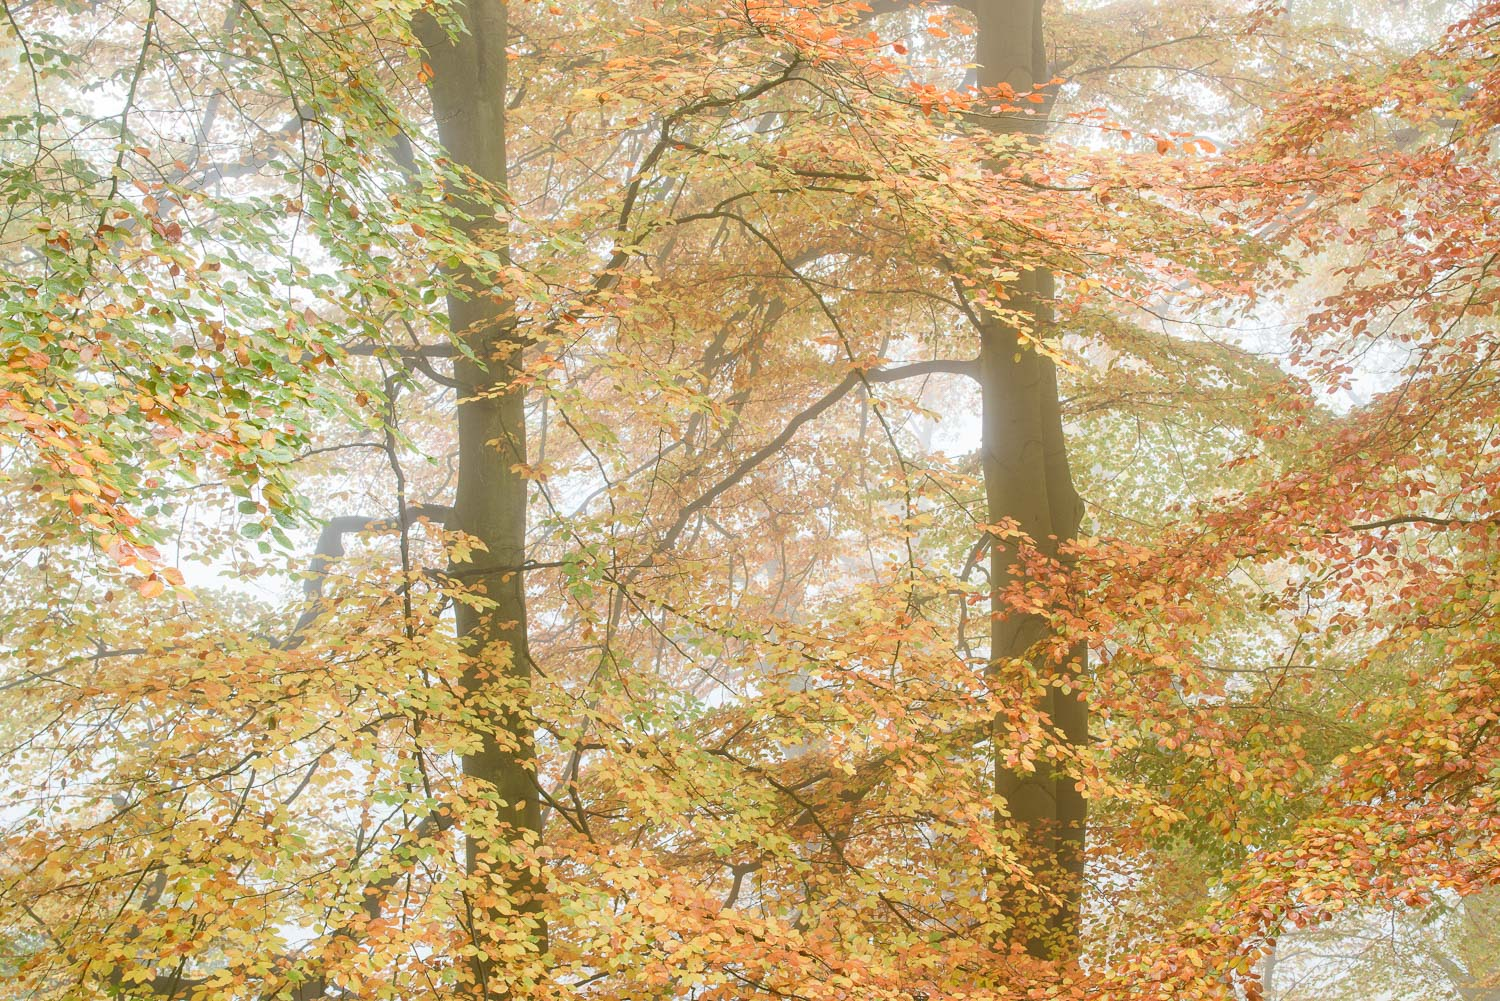 Autumn Beech Trees in Mist